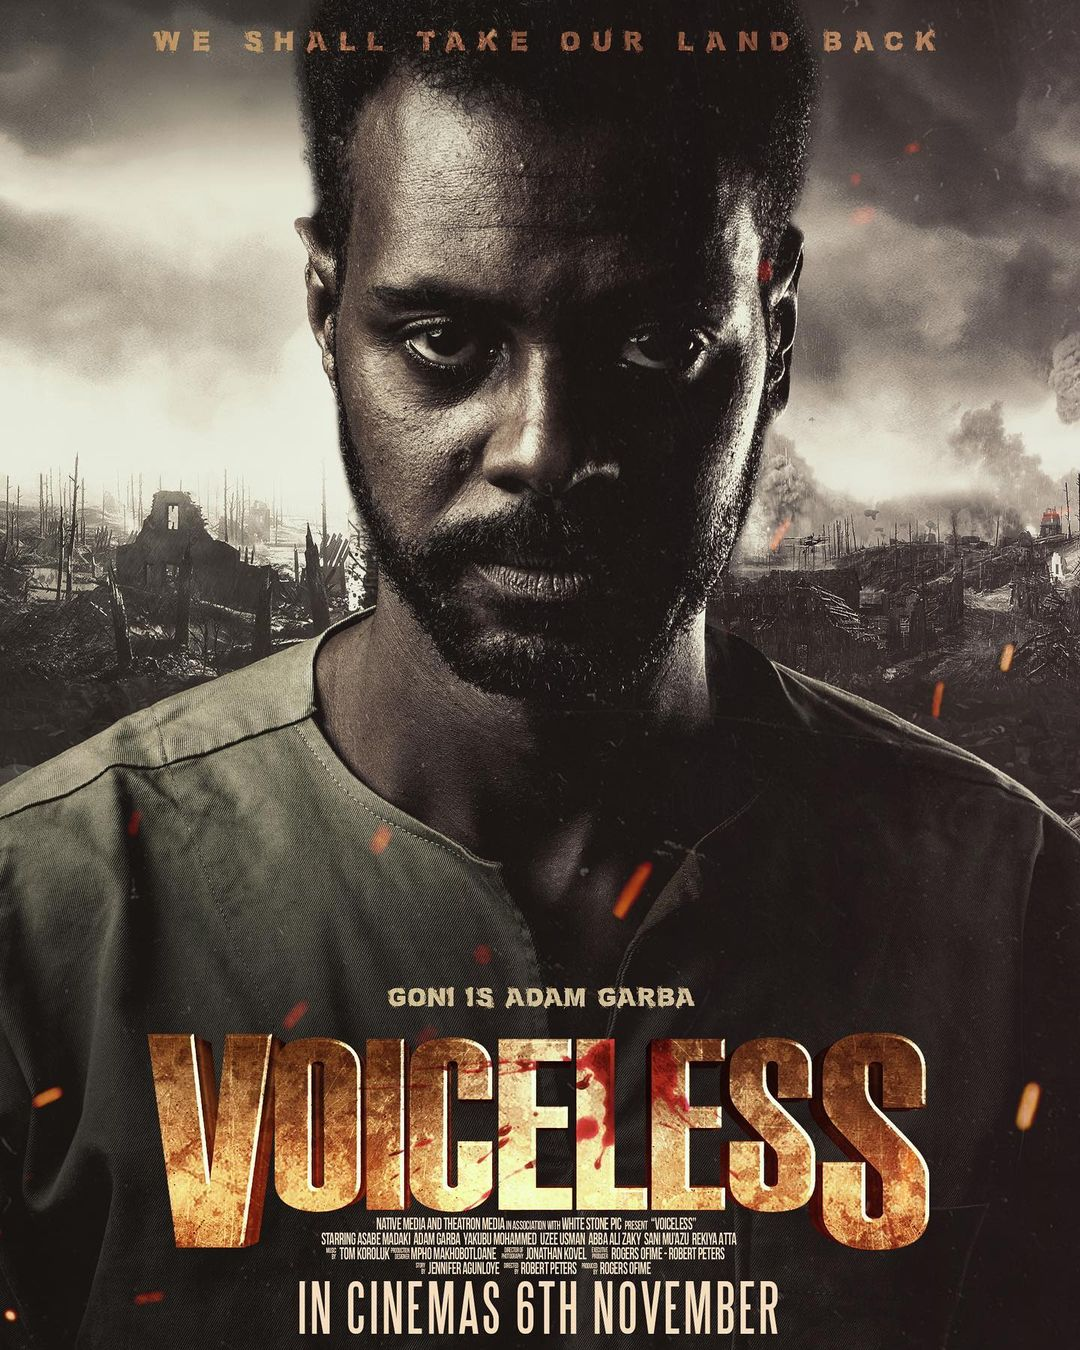 121257288 2735967943317626 6906451856170246593 n - Every Nollywood Movie Releasing This November 2020